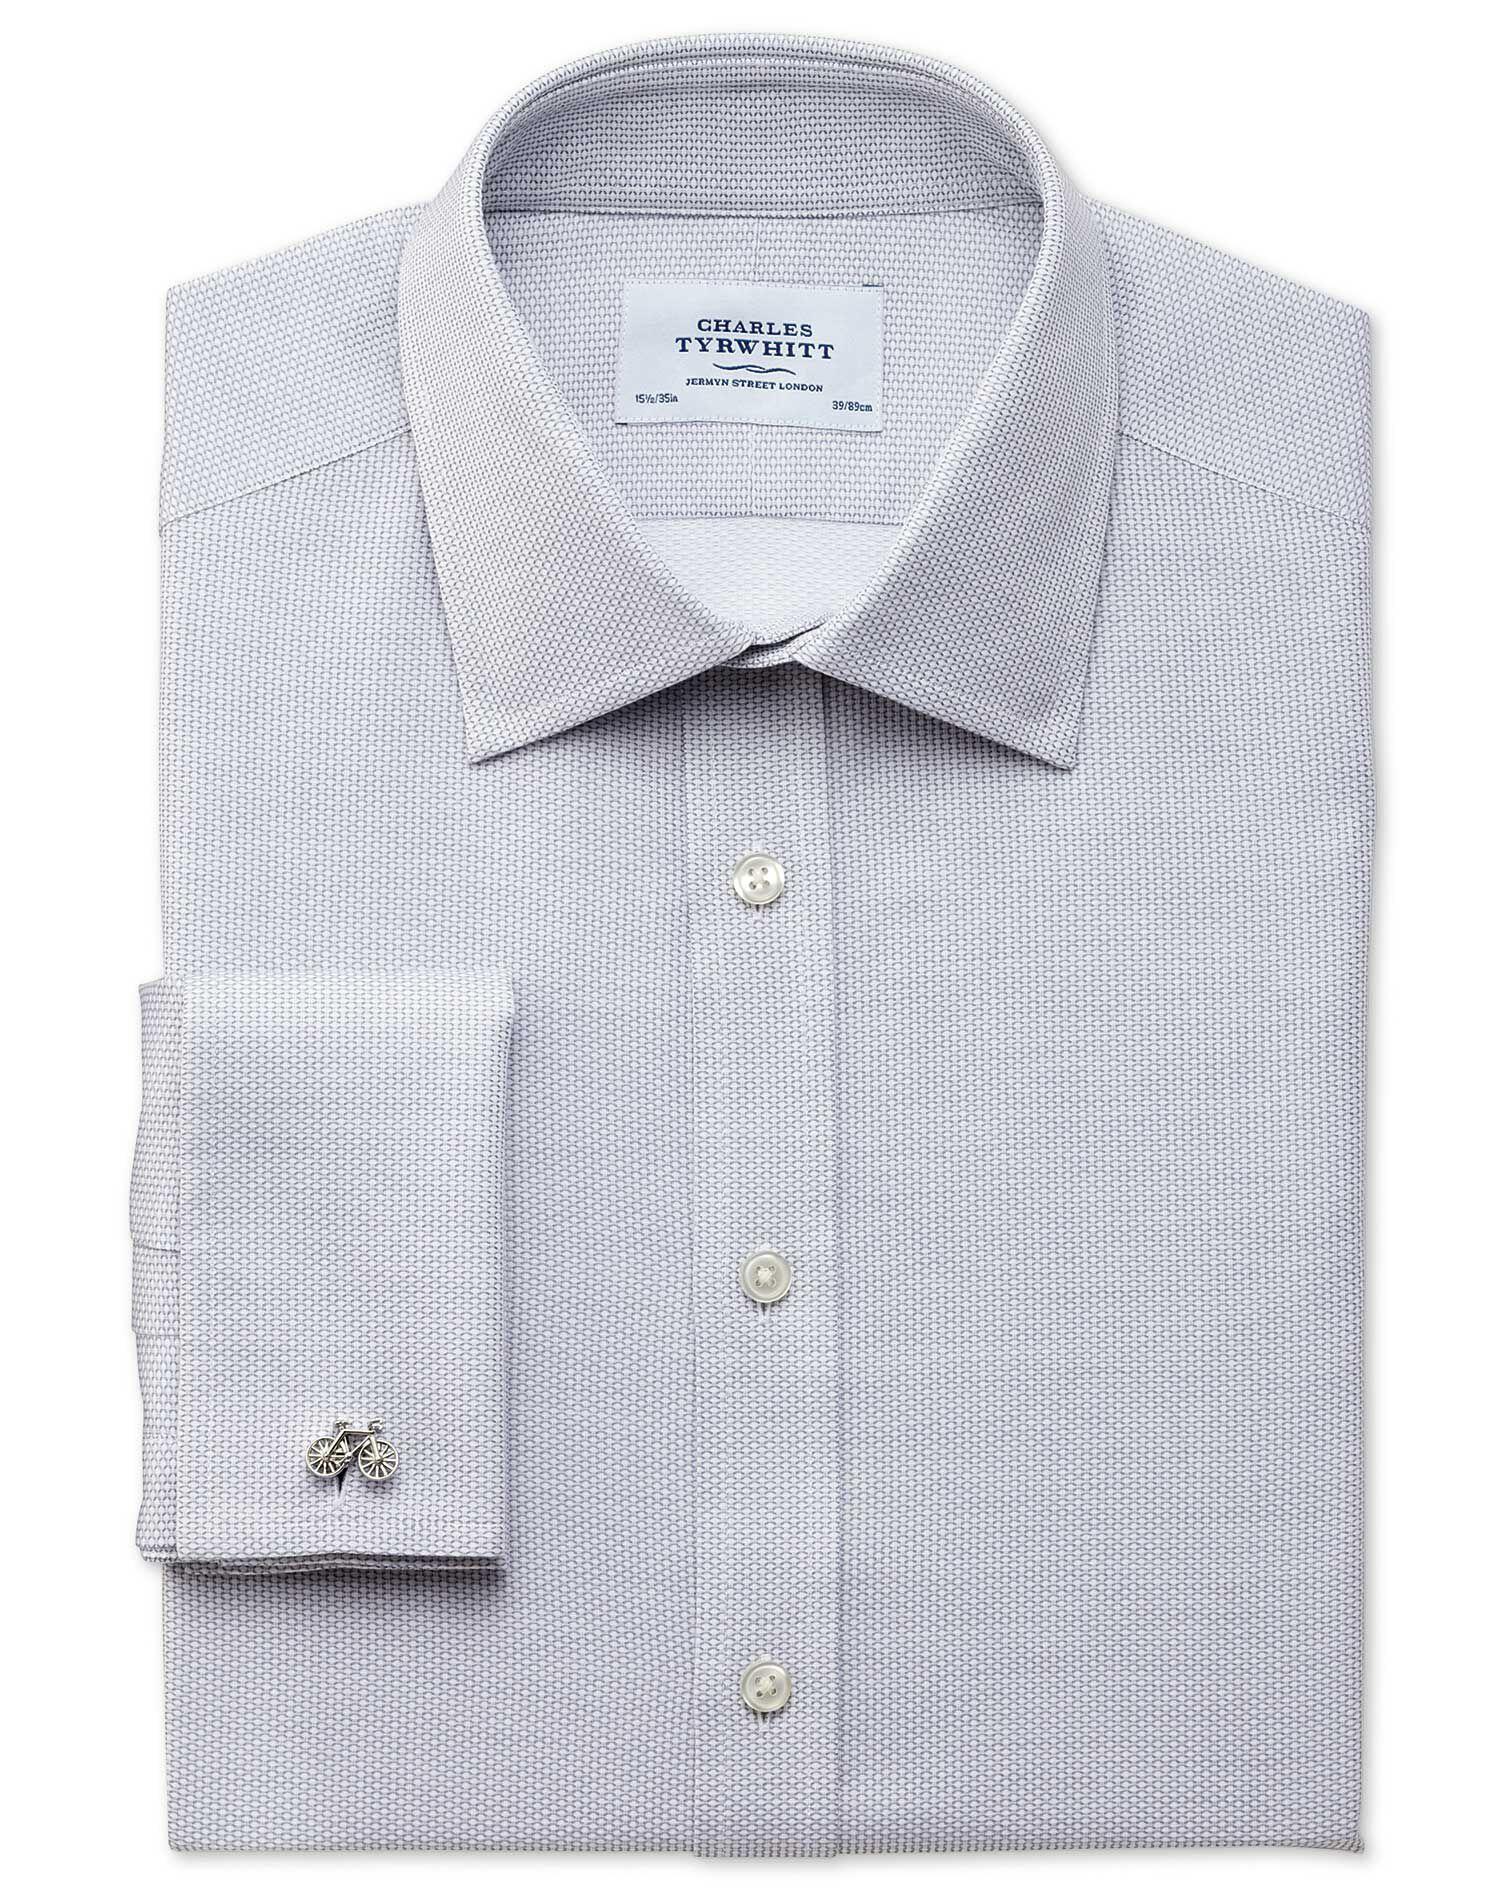 Classic Fit Egyptian Cotton Diamond Texture Light Grey Formal Shirt Double Cuff Size 16.5/36 by Char